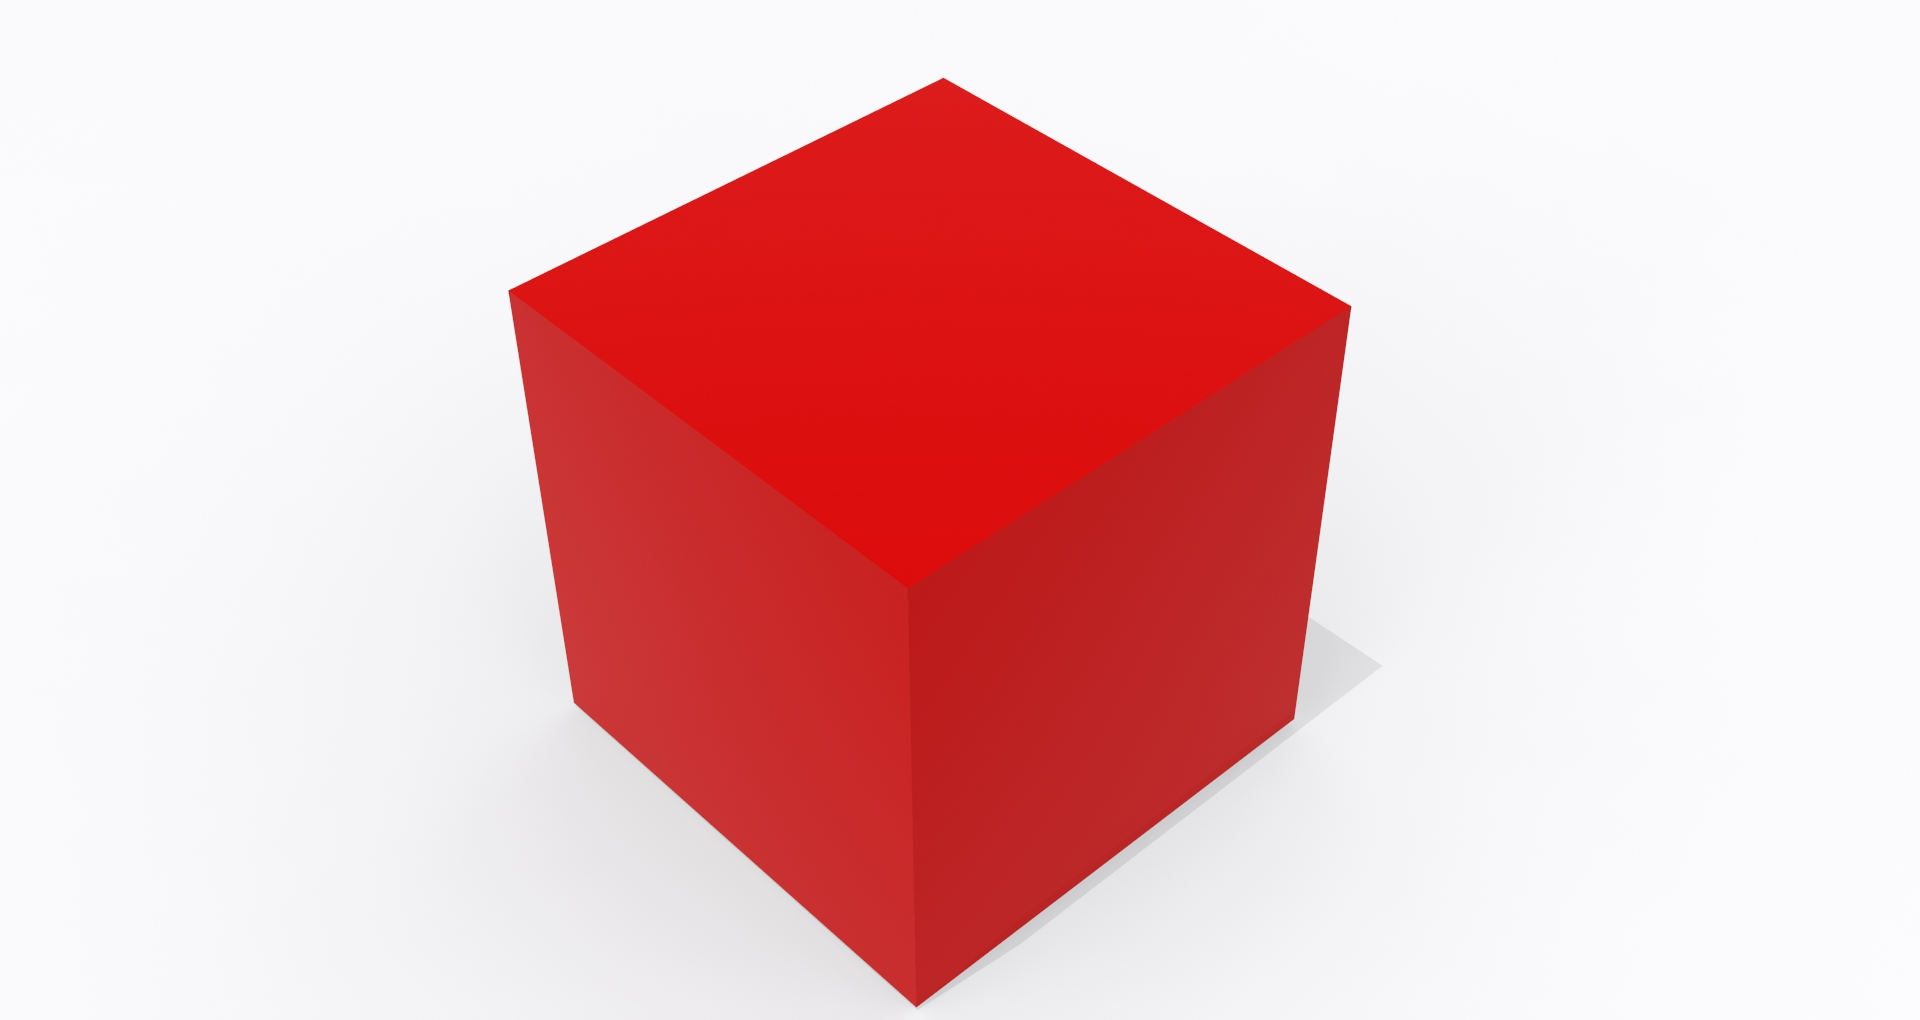 Cube clipart red Next Cube Previous Projects Red